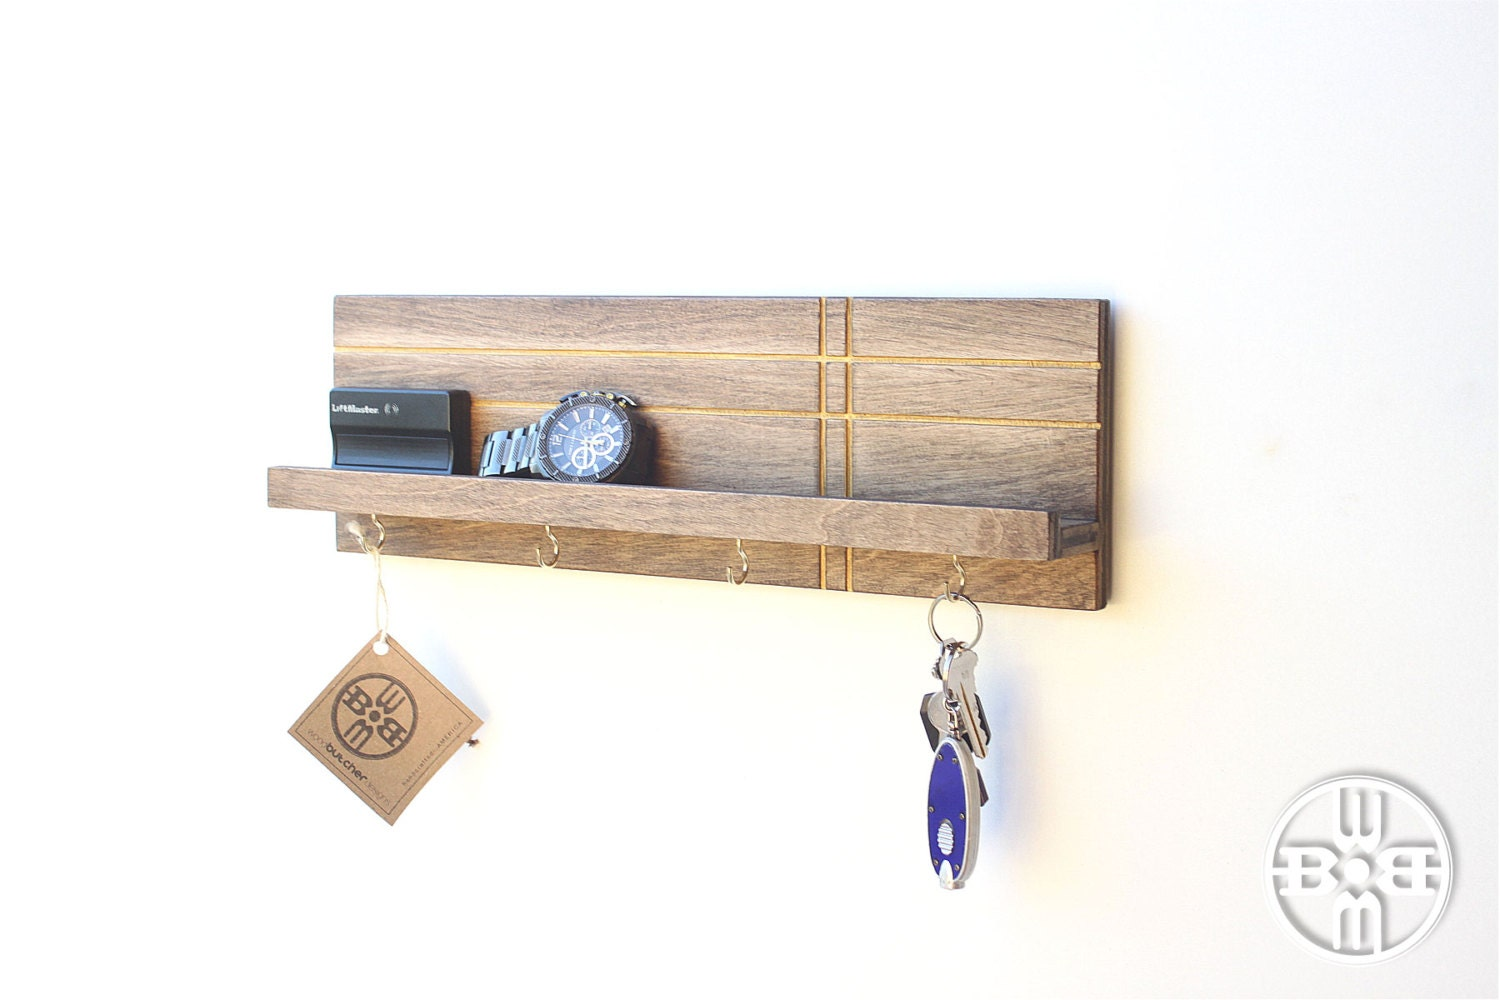 Key Holder For Wall Modern Shelf Modern Entryway Wall